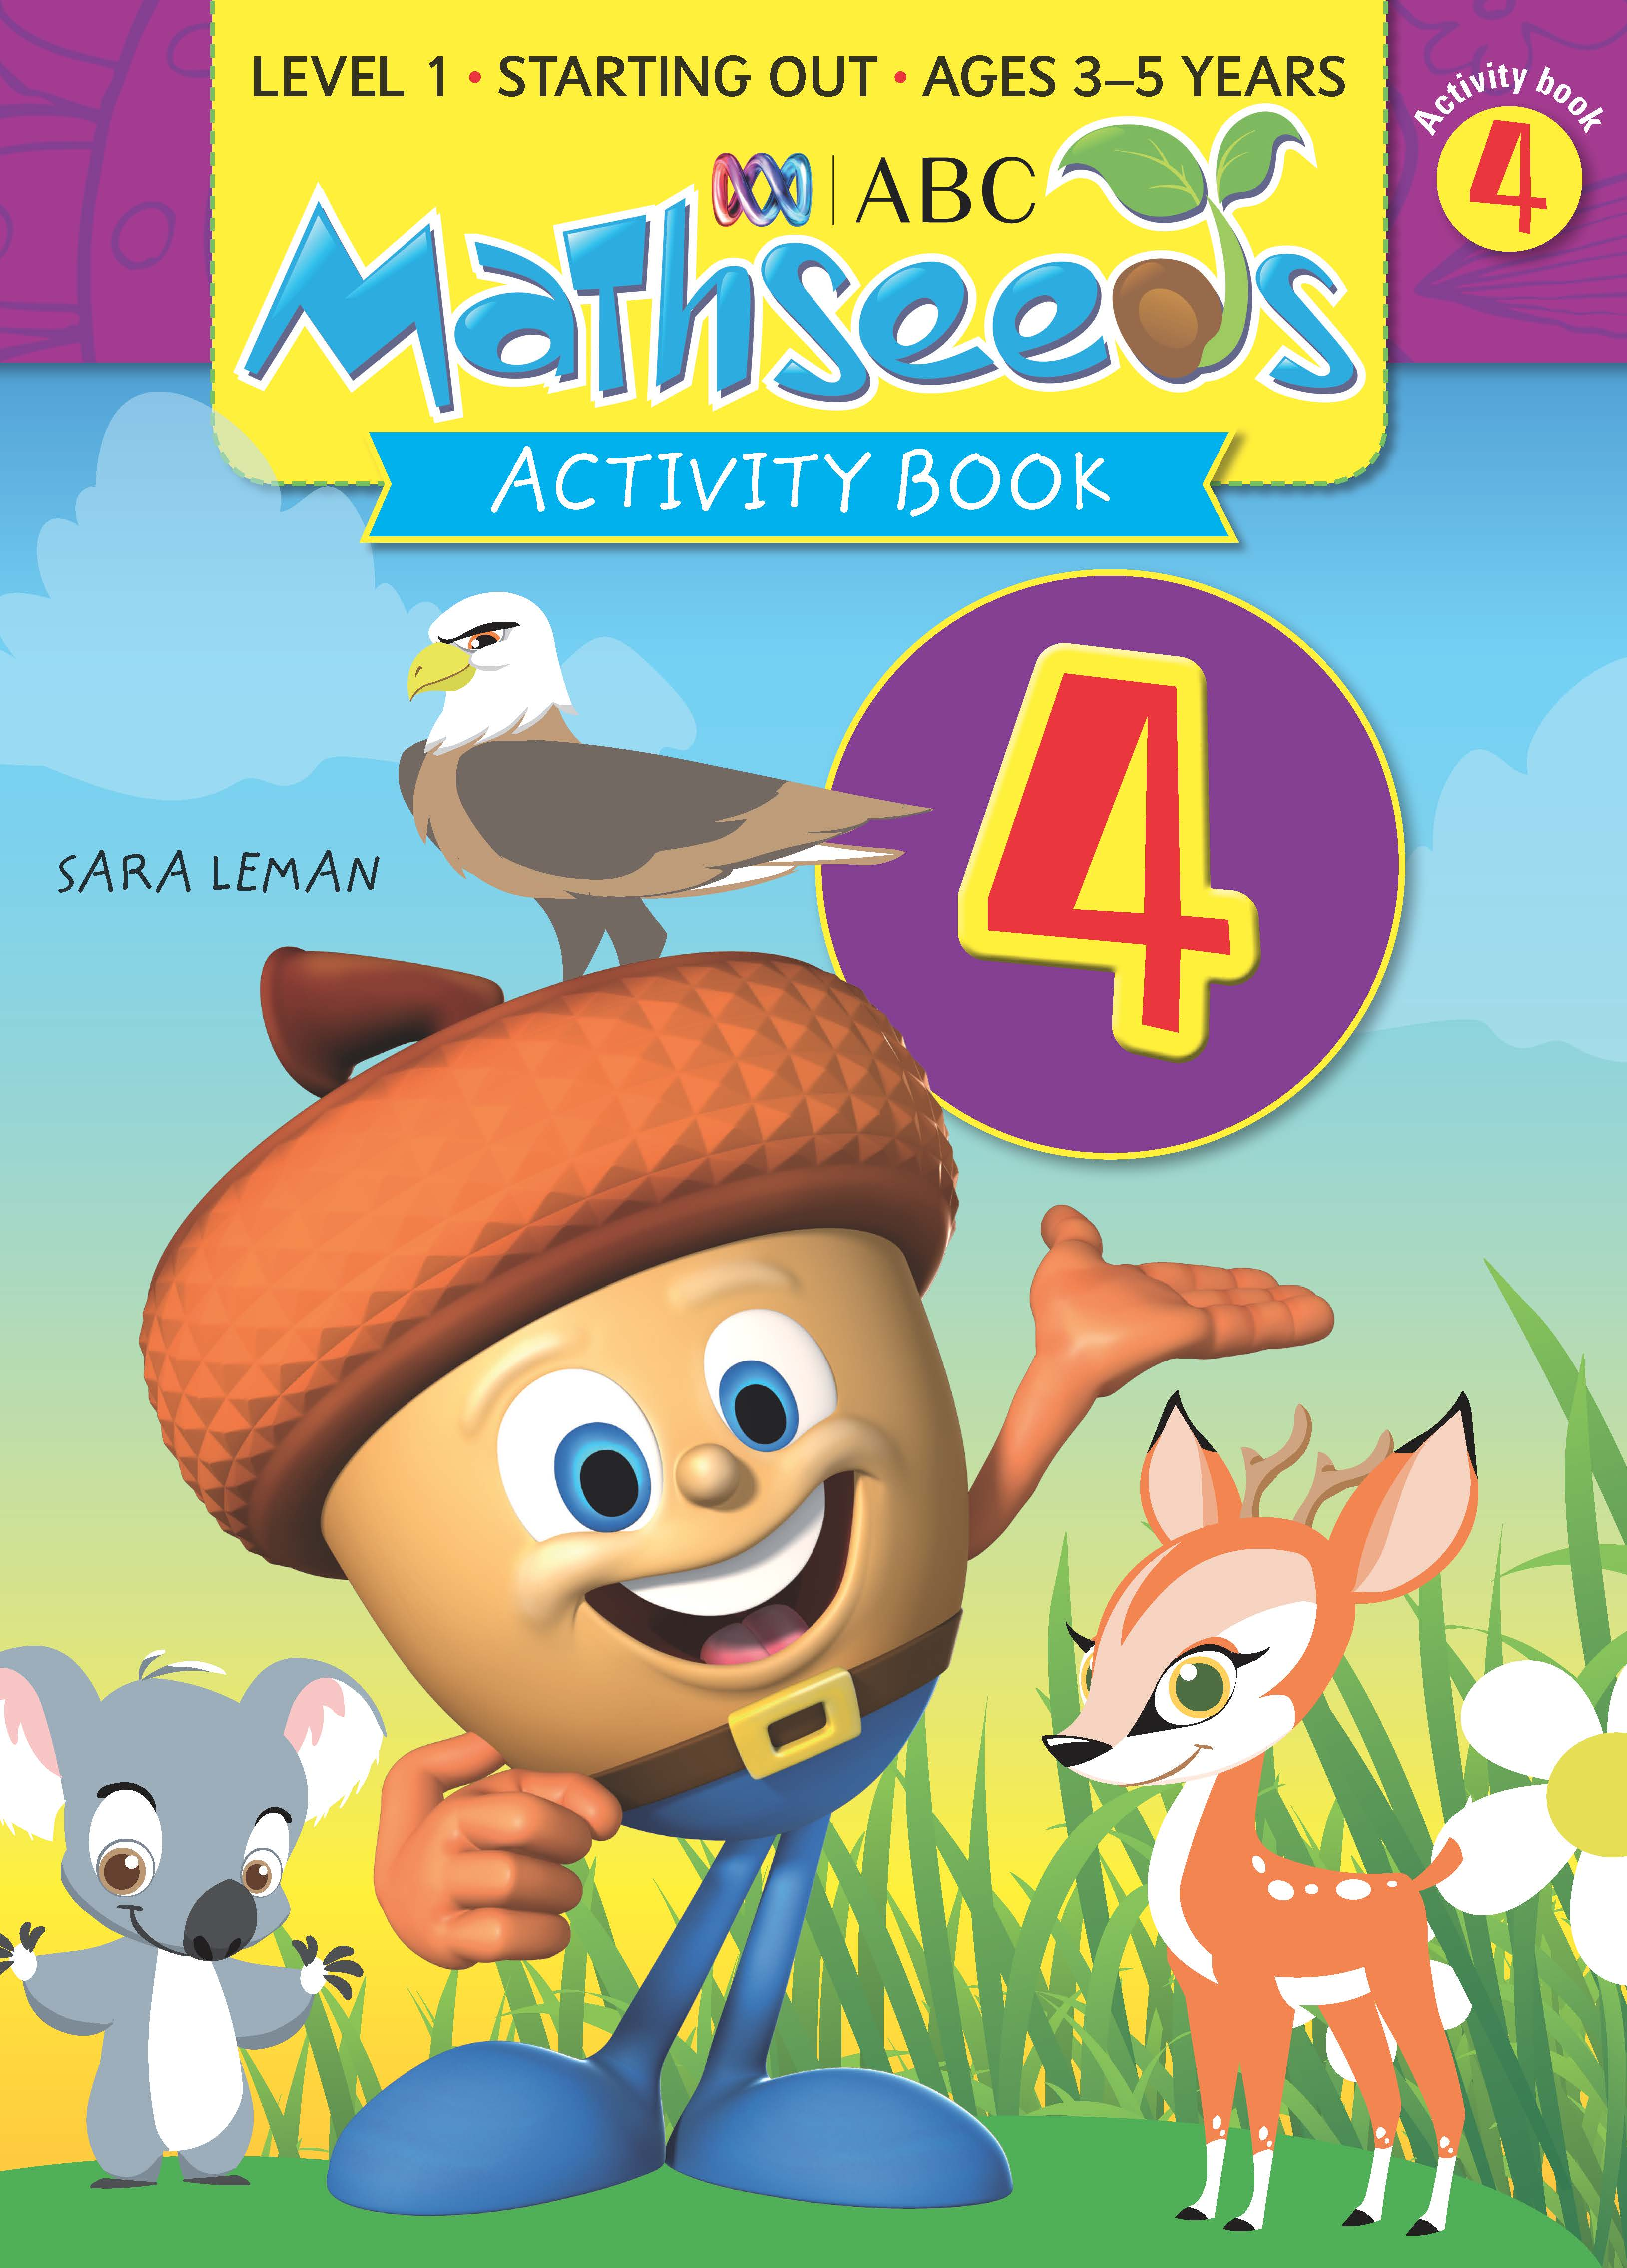 ABC Mathseeds Activity Book 4 Level 1 Ages 3-5